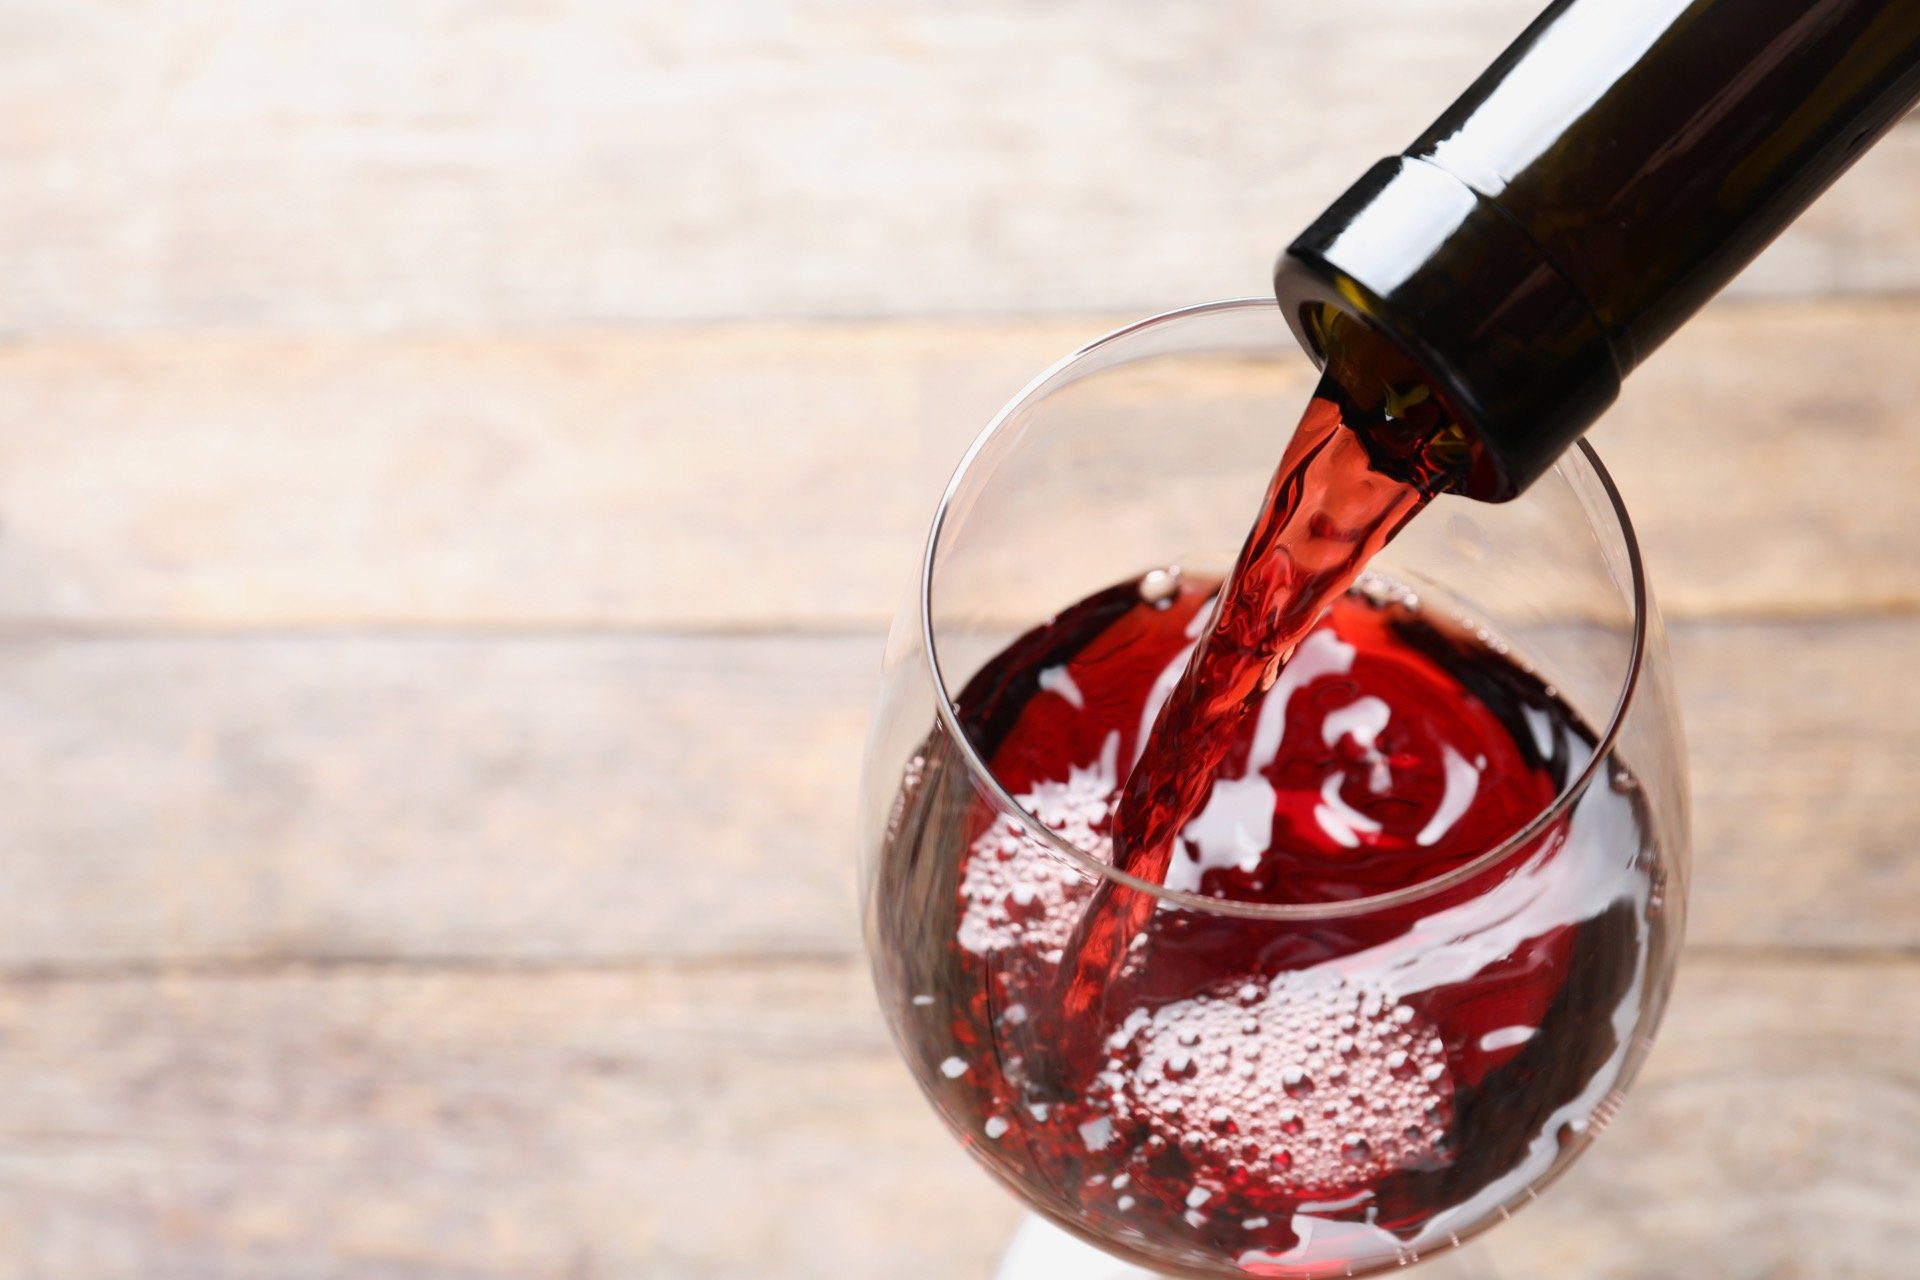 Pouring red wine from glass bottle